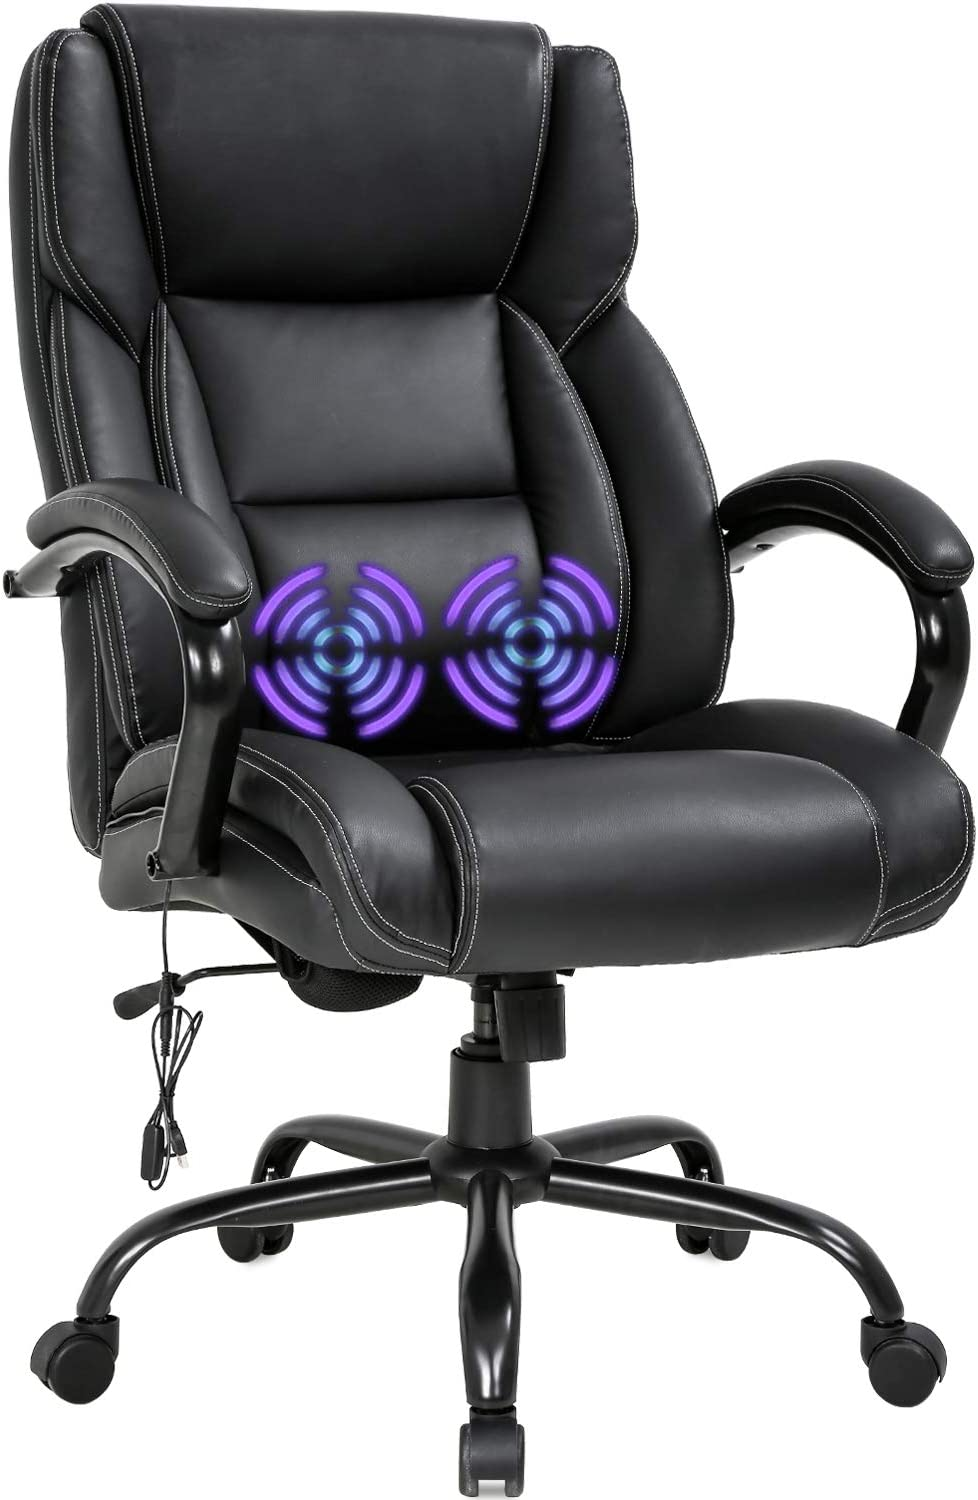 Big and Tall 500 lbs office chair